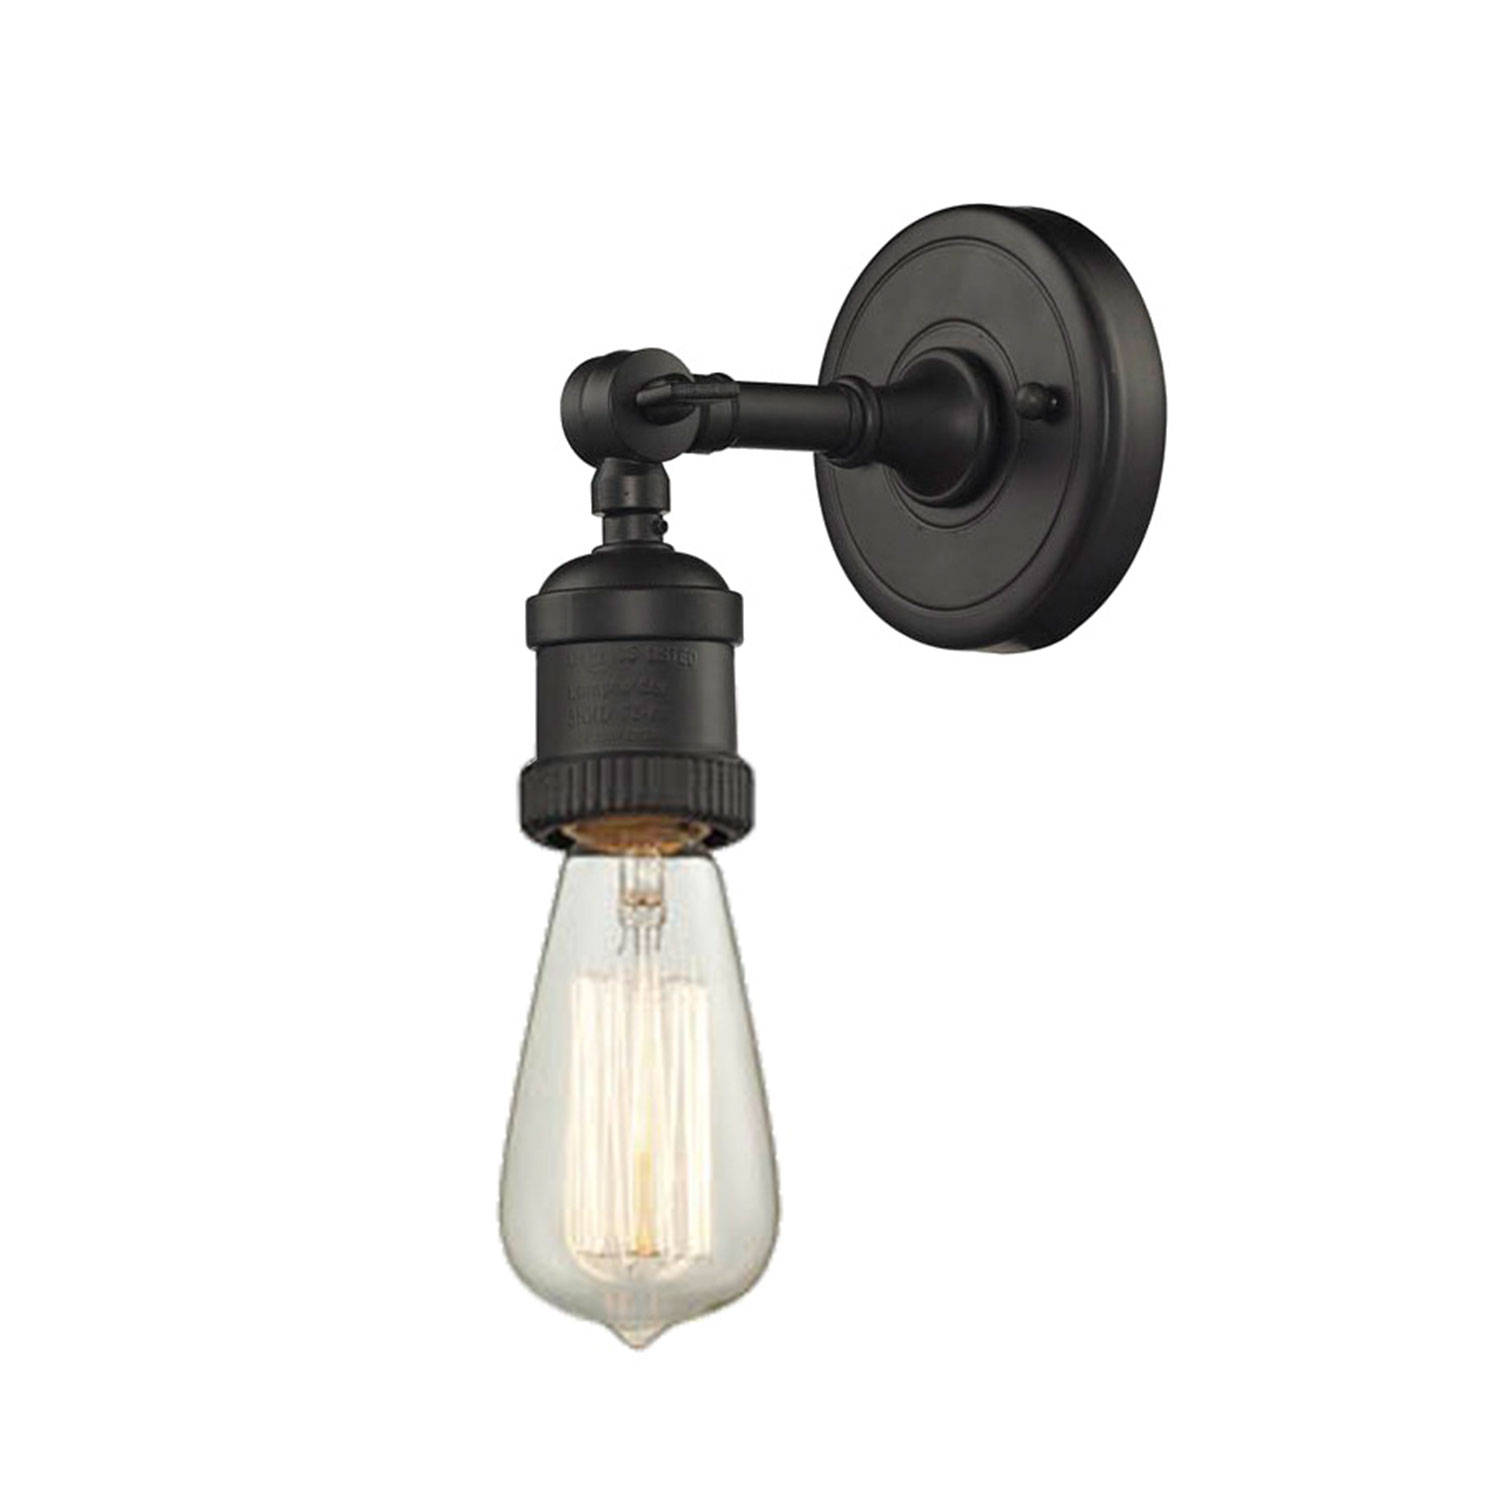 Lights.com Wall Lights Vintage Oil Rubbed Bronze Swivel Neck Wall Sconce